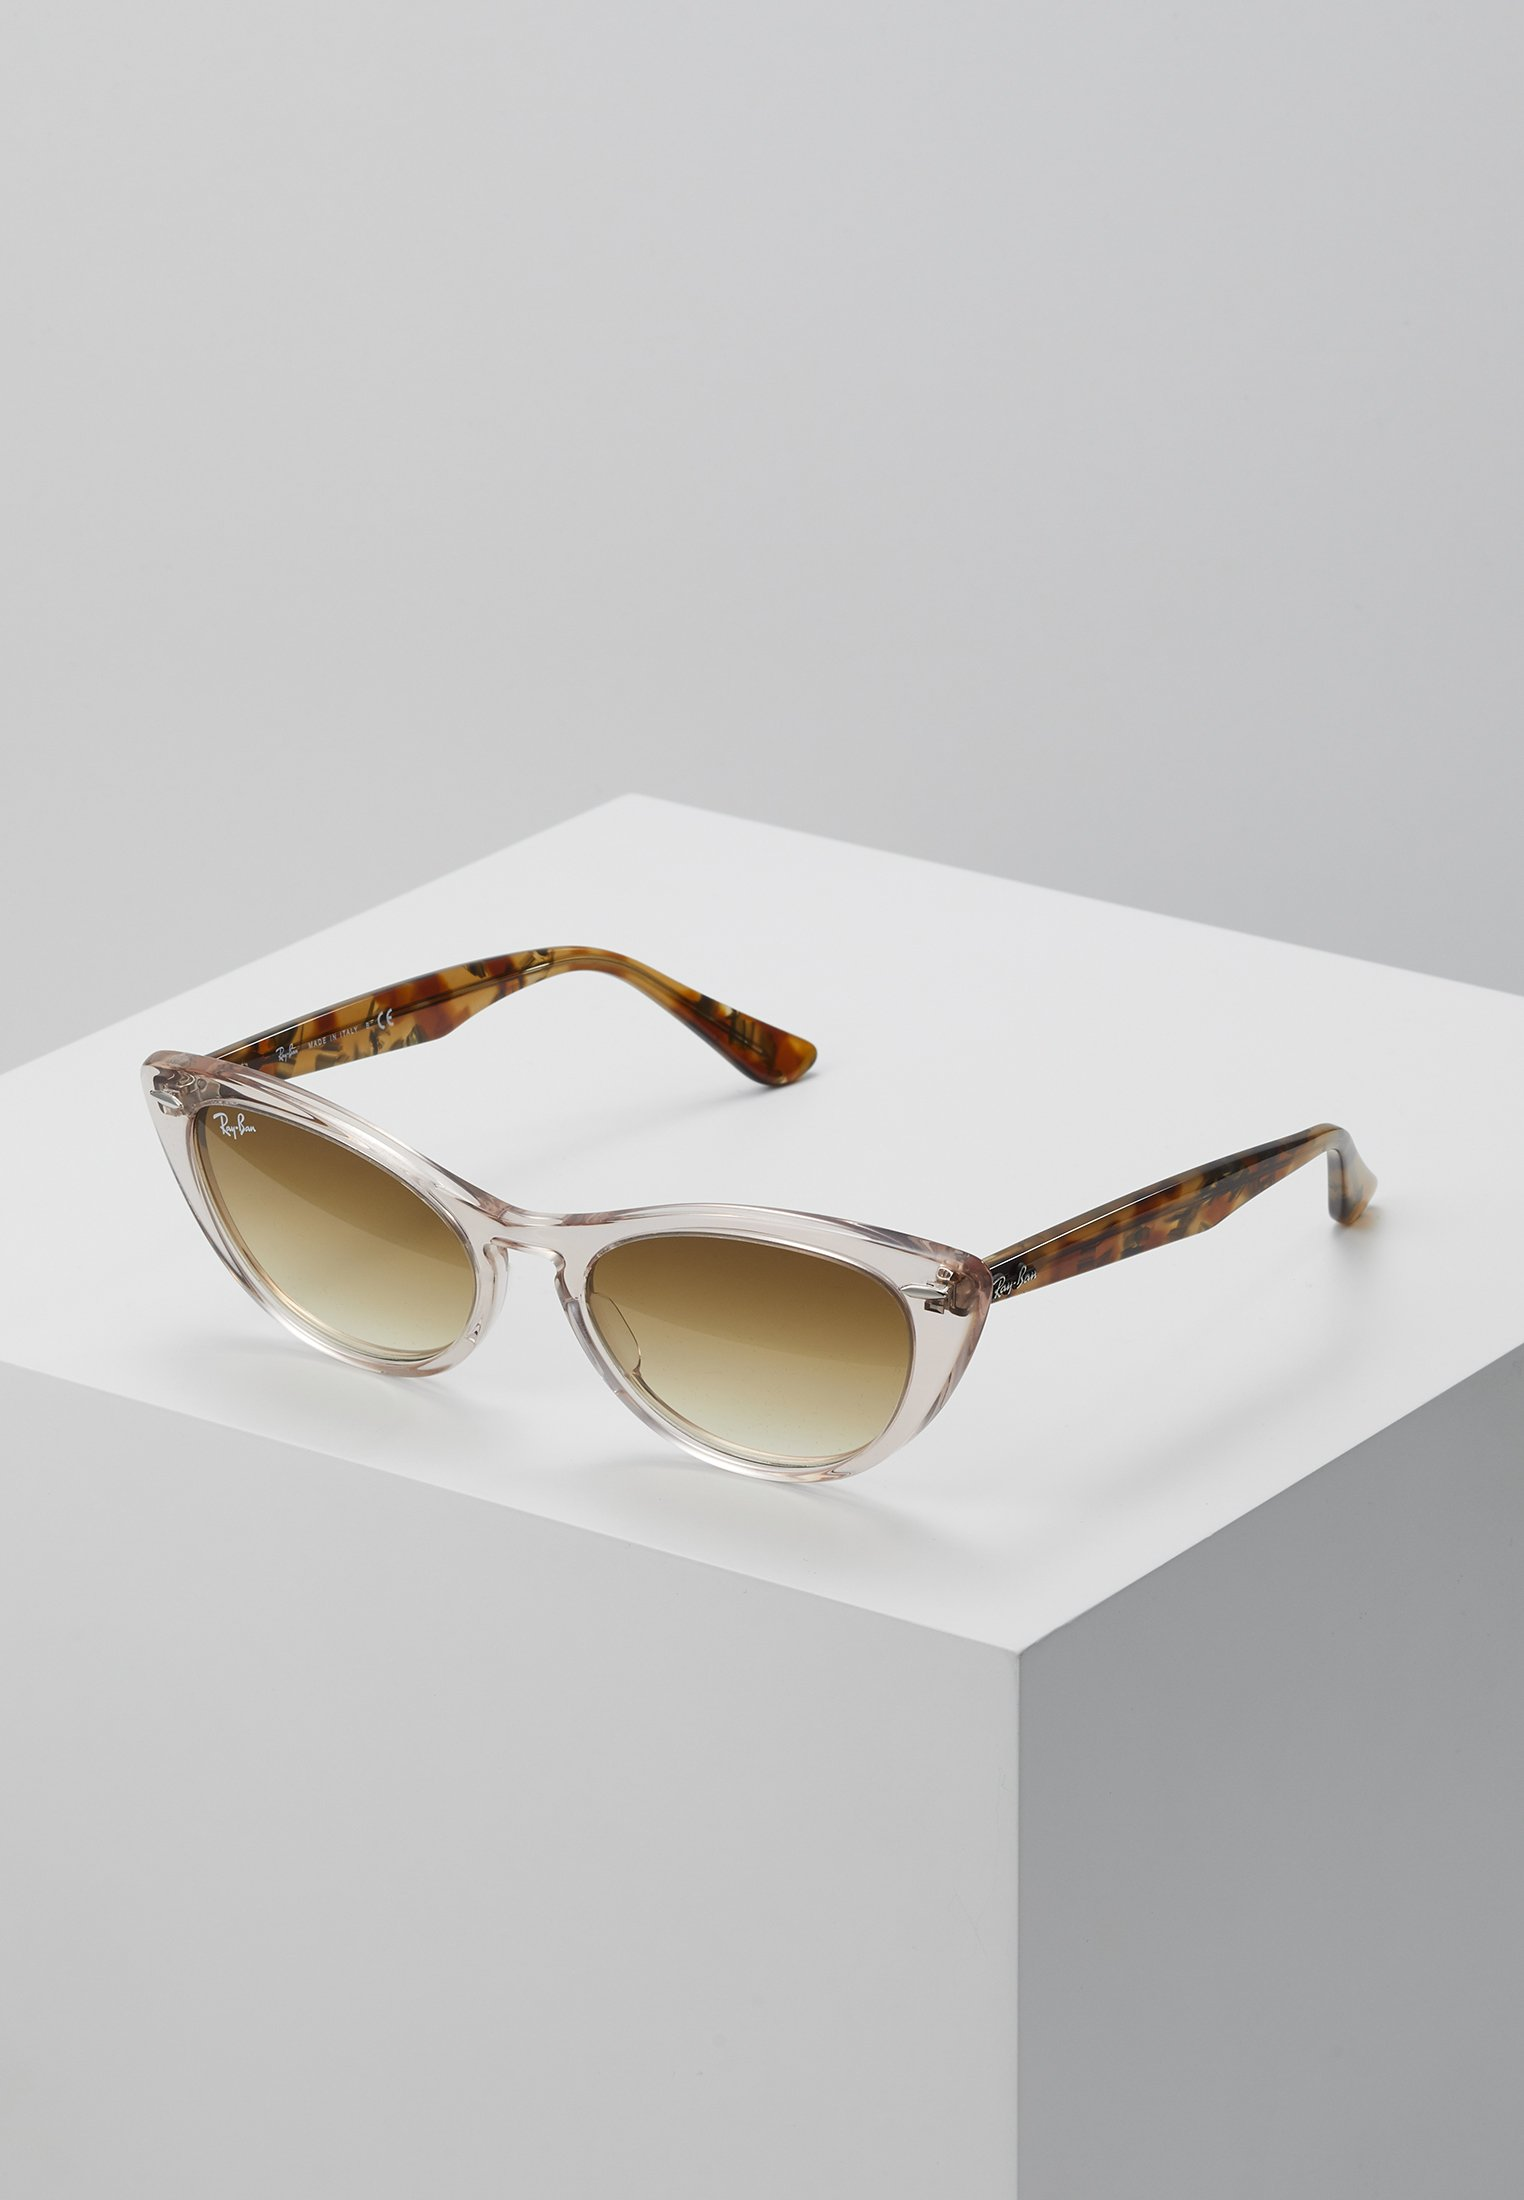 Ray-Ban Sunglasses - transparent/light brown